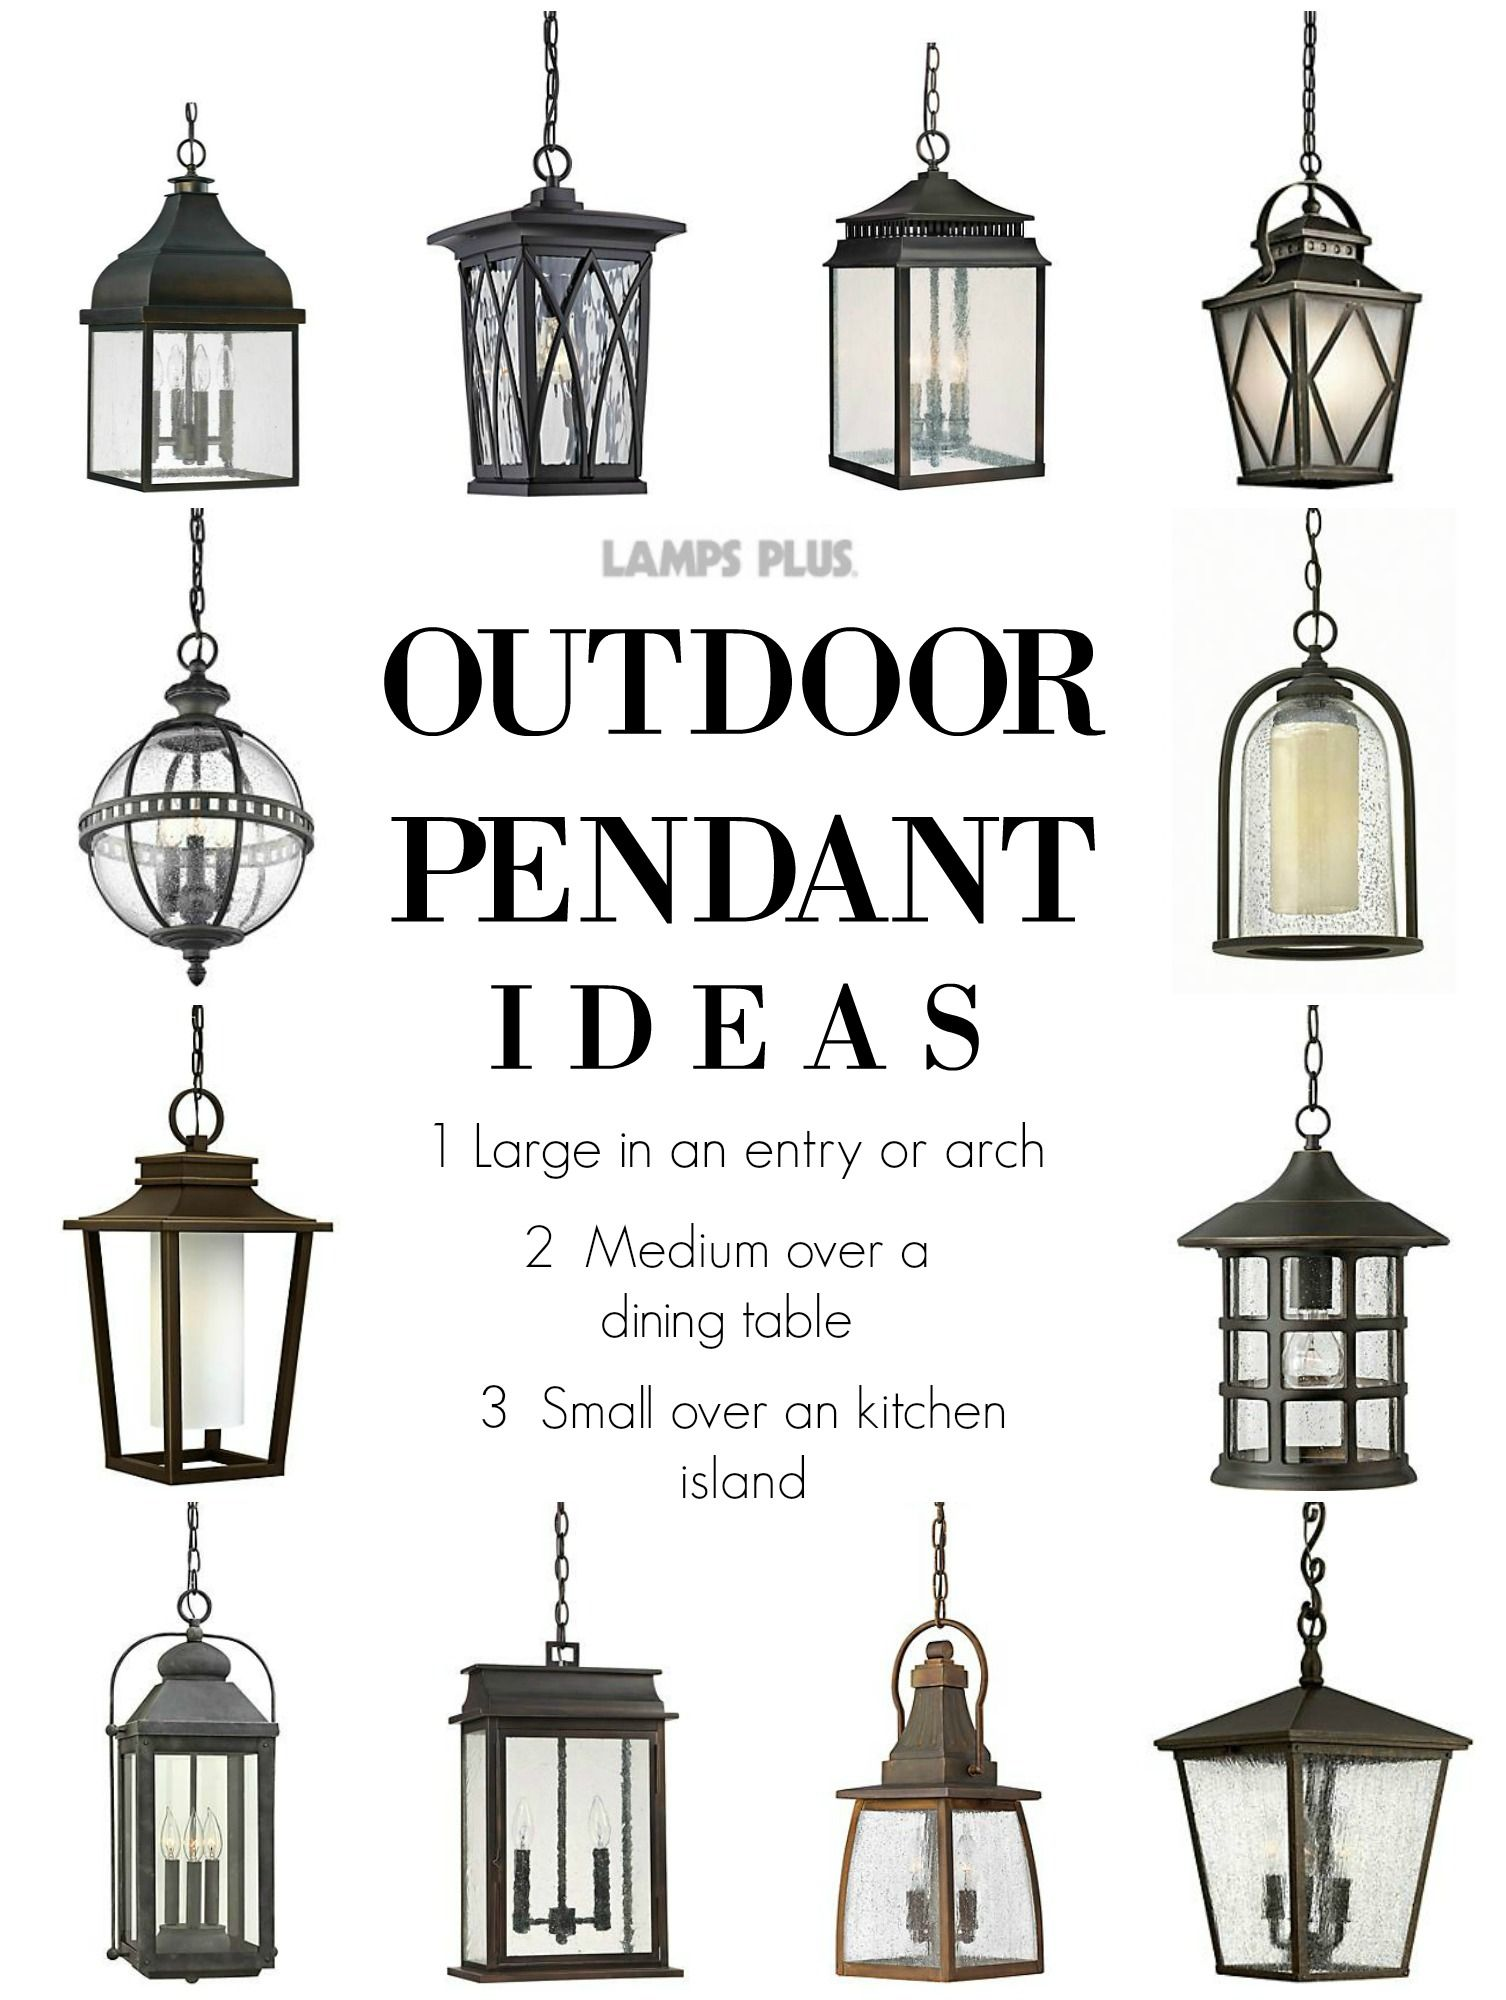 Outdoor Lighting Outdoor Pendant Ideas From Lampsplus Outdoorliving Outdoorlightin Outdoor Pendant Lighting Outdoor Light Fixtures Exterior Light Fixtures